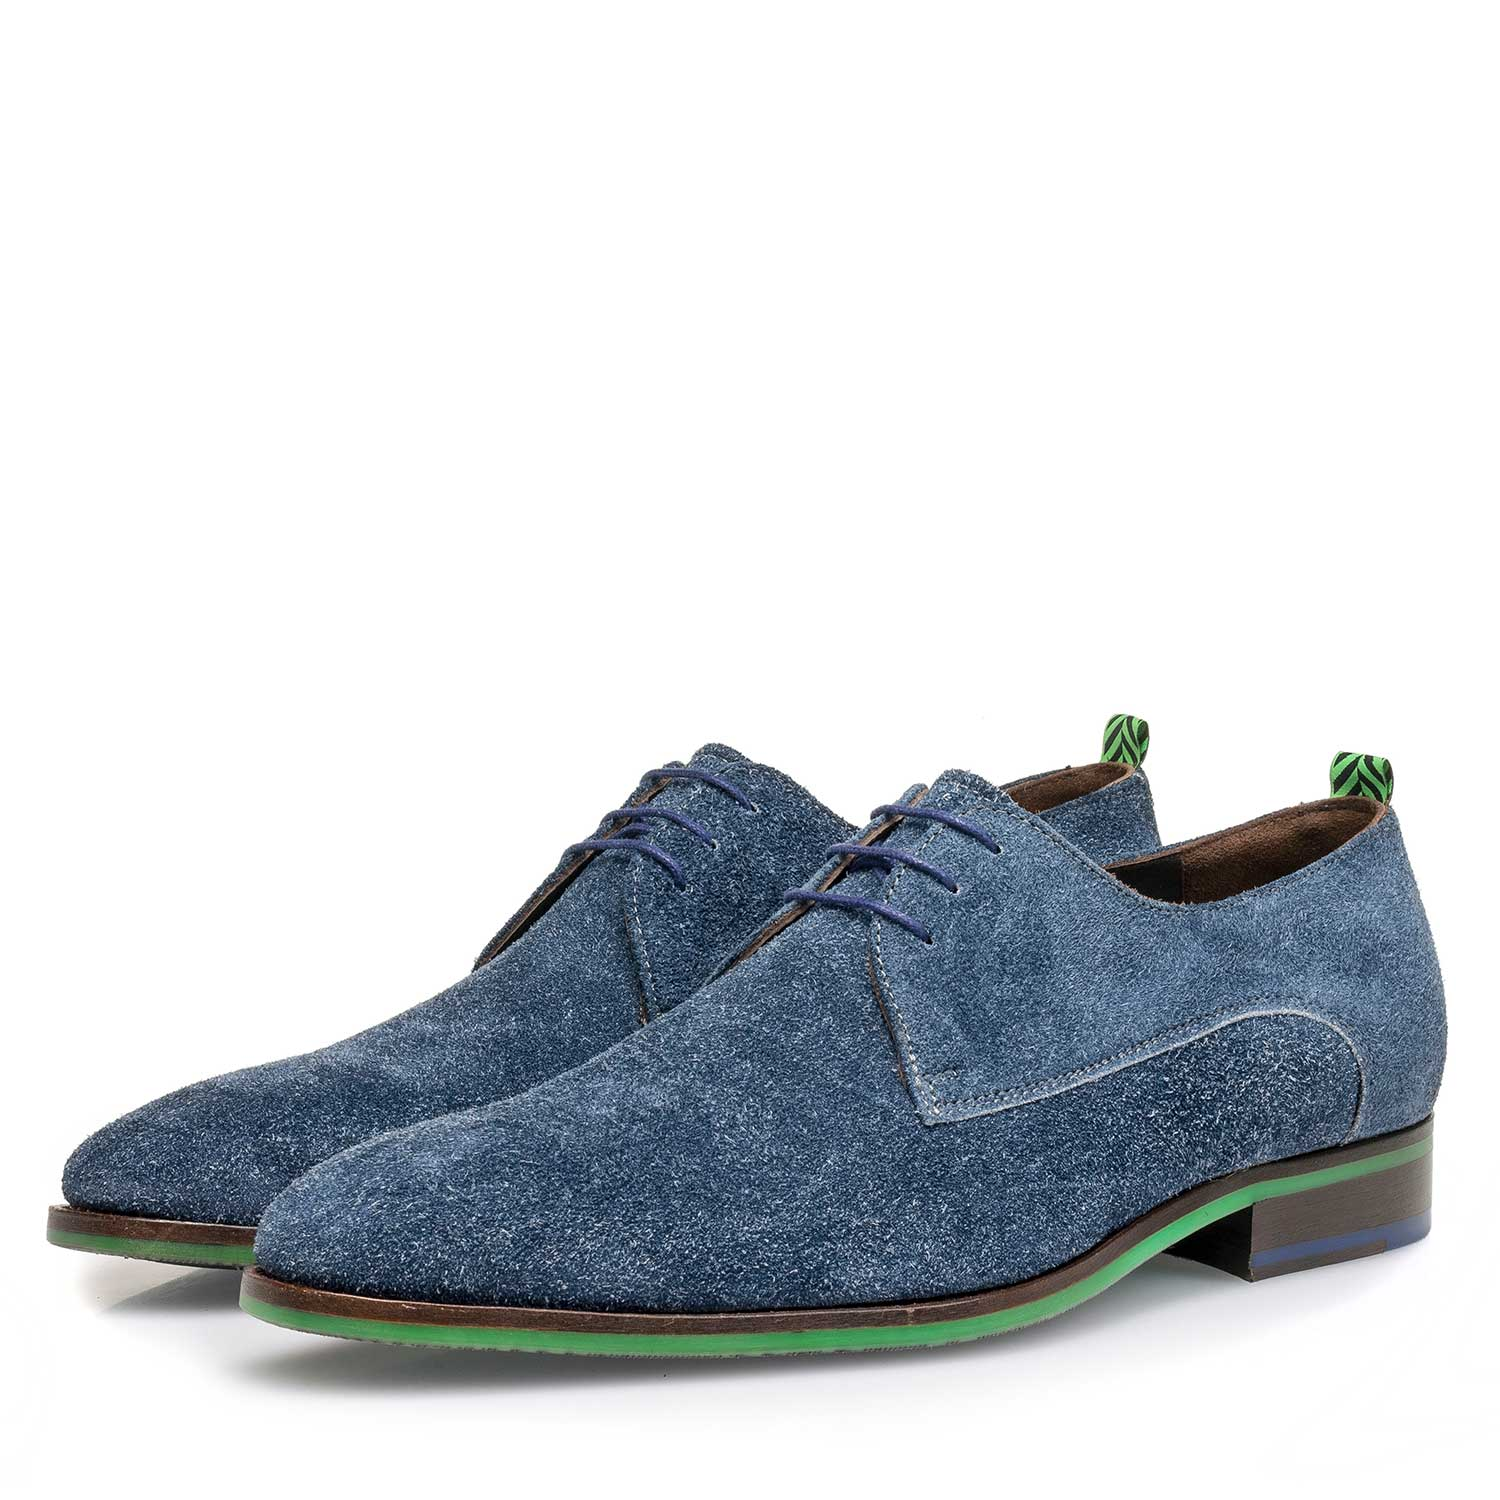 18092/01 - Blue buffed suede leather lace shoe